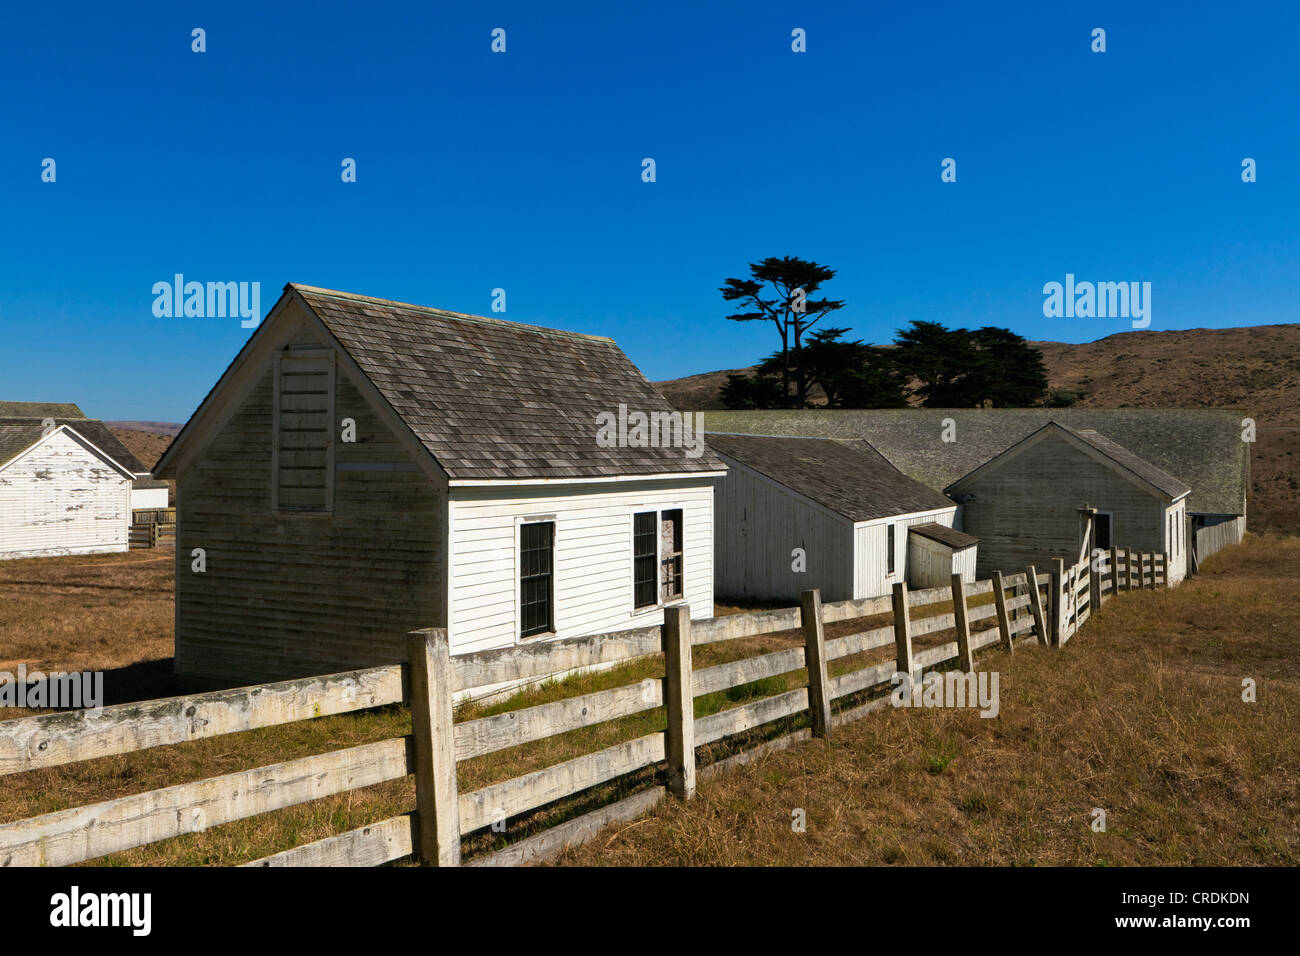 Old abandoned farm preserved as an open-air museum in Point Reyes National Seashore, Point Reyes, California, USA, - Stock Image